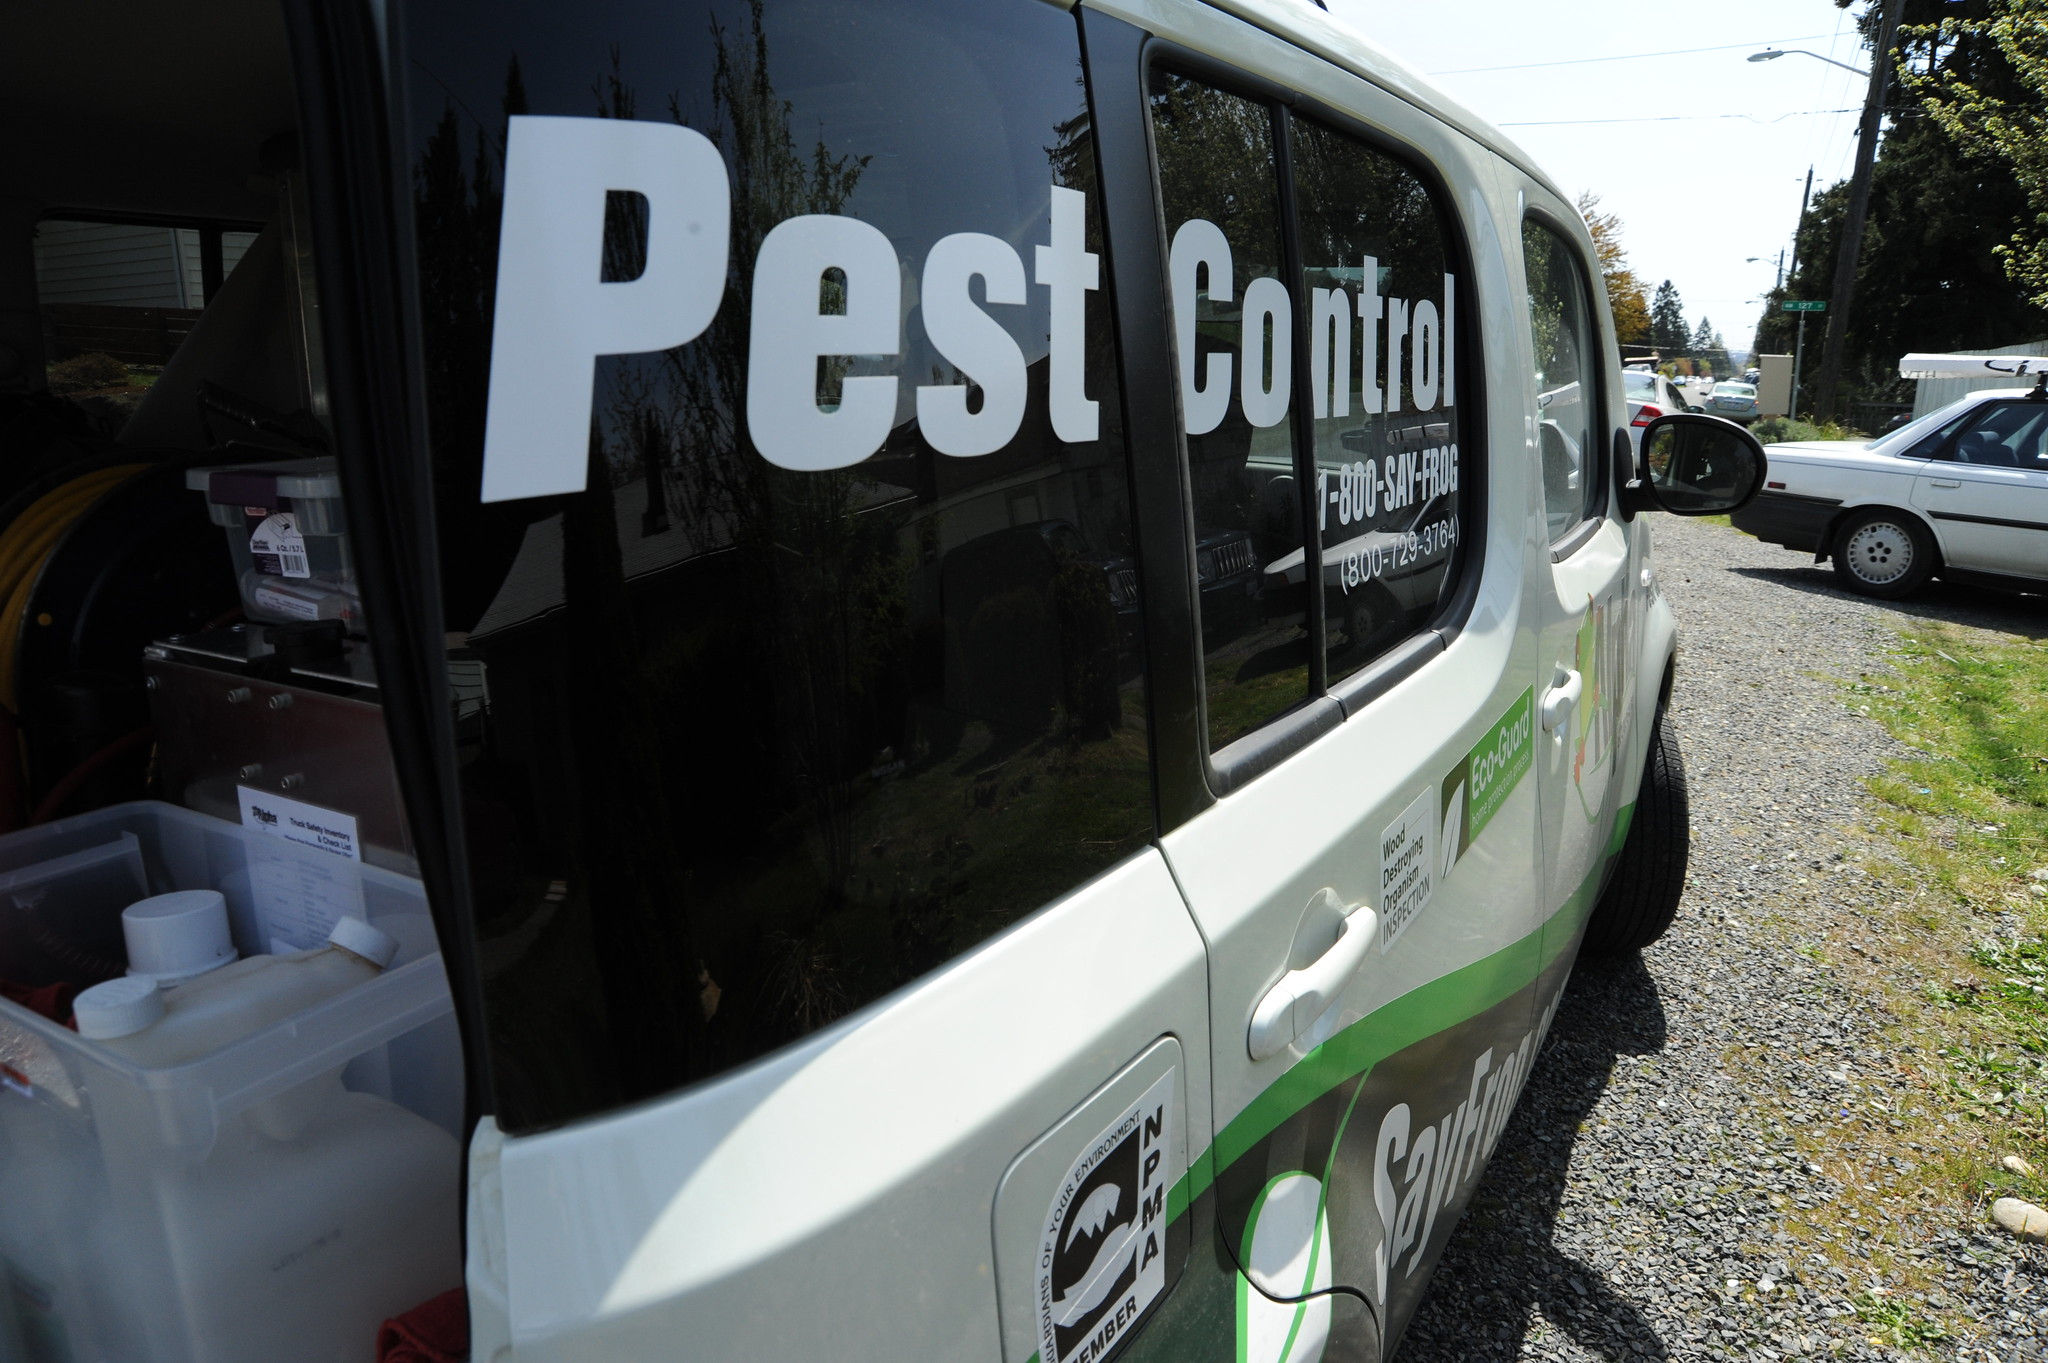 image - Pest Control Services for Homes and Commercial Premises: Why You Need a Professional